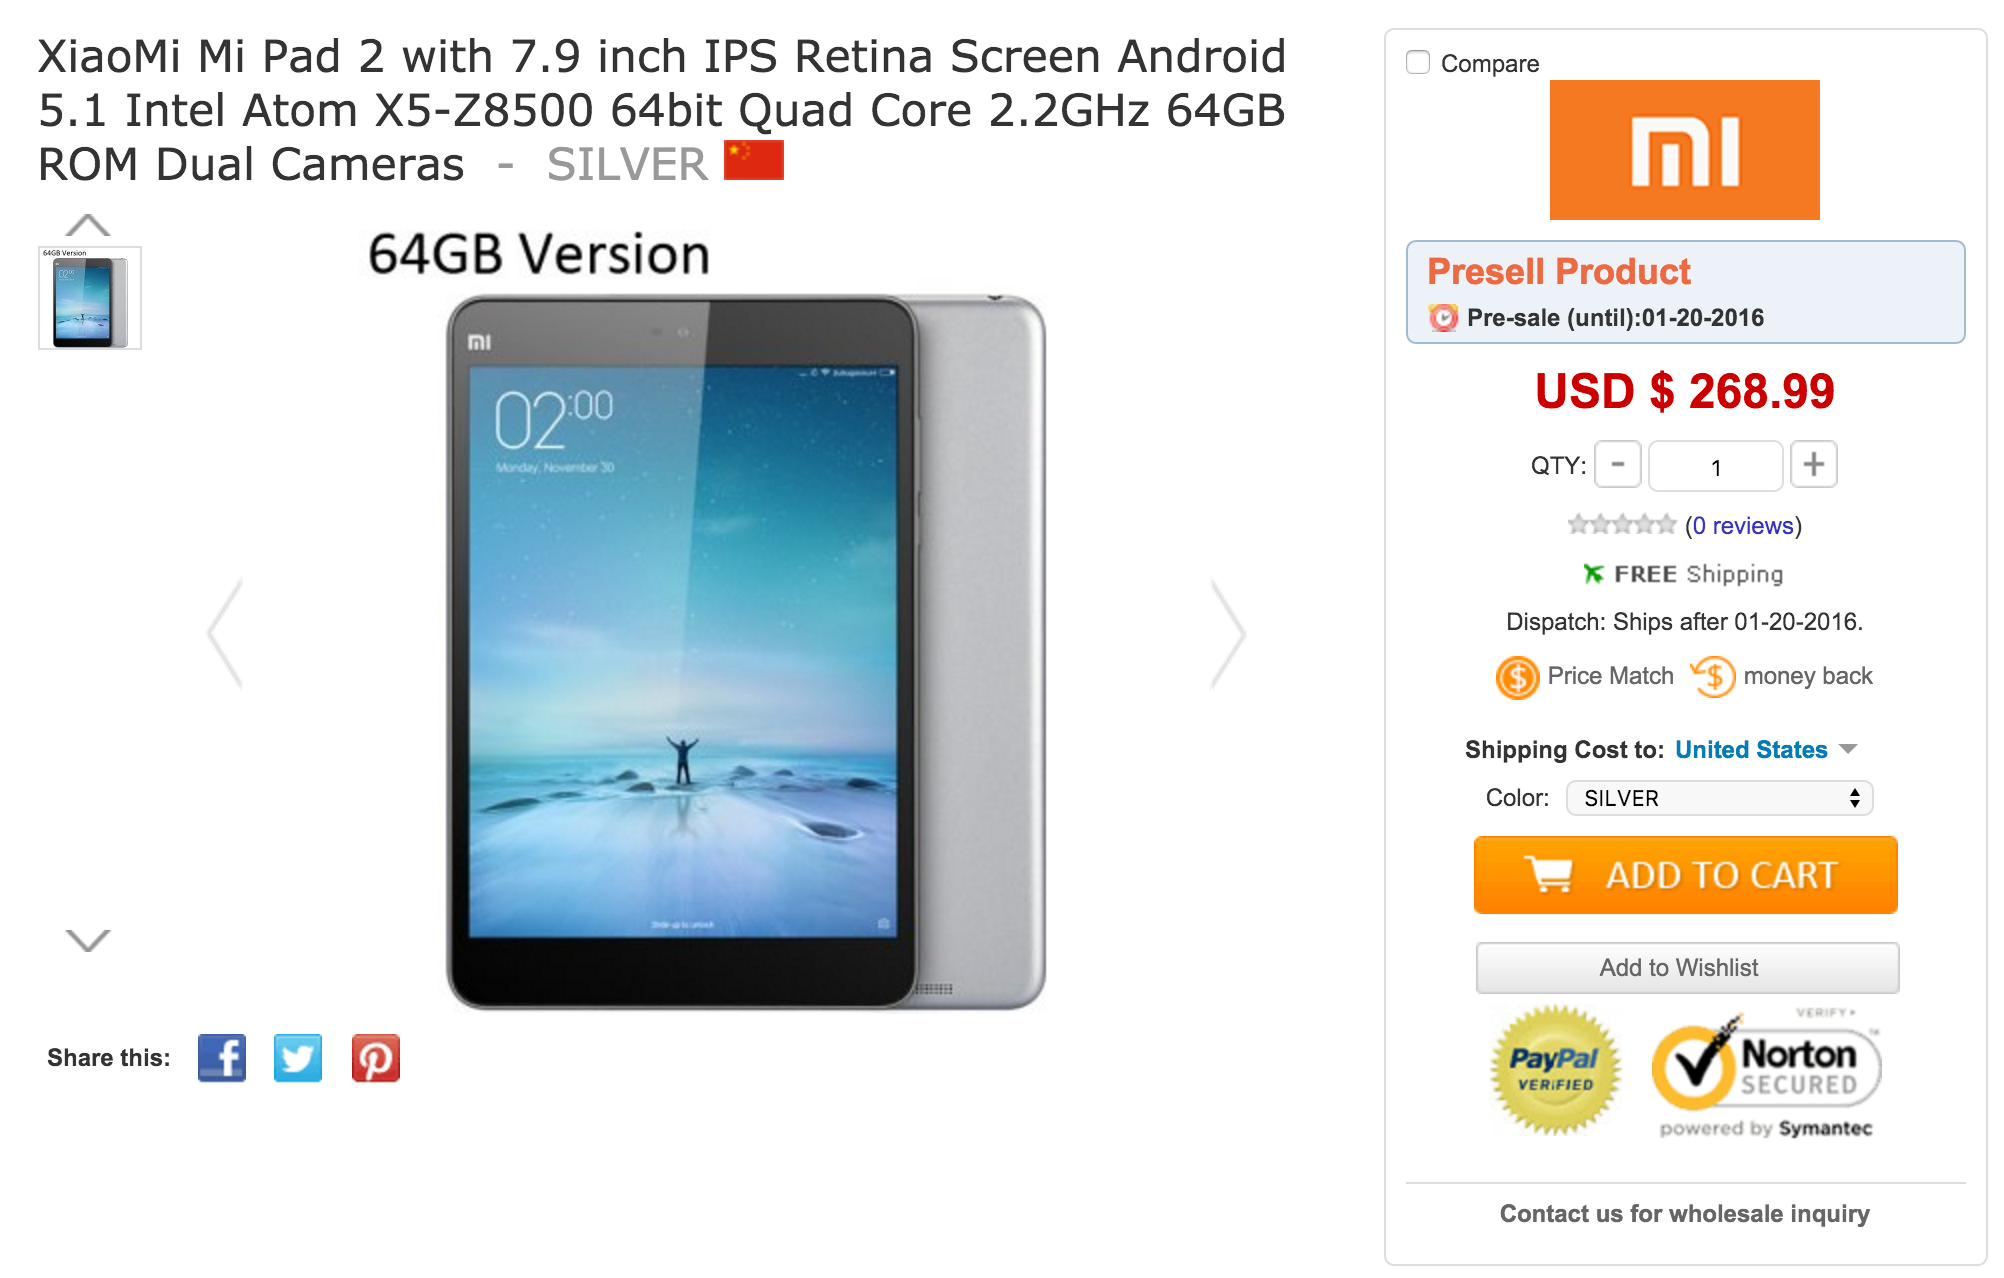 XiaoMi Mi Pad 2 with 7.9 inch IPS Retina Screen Android 5.1 Intel Atom X5-Z8500 64bit Quad Core 2.2GHz 64GB ROM Dual Cameras